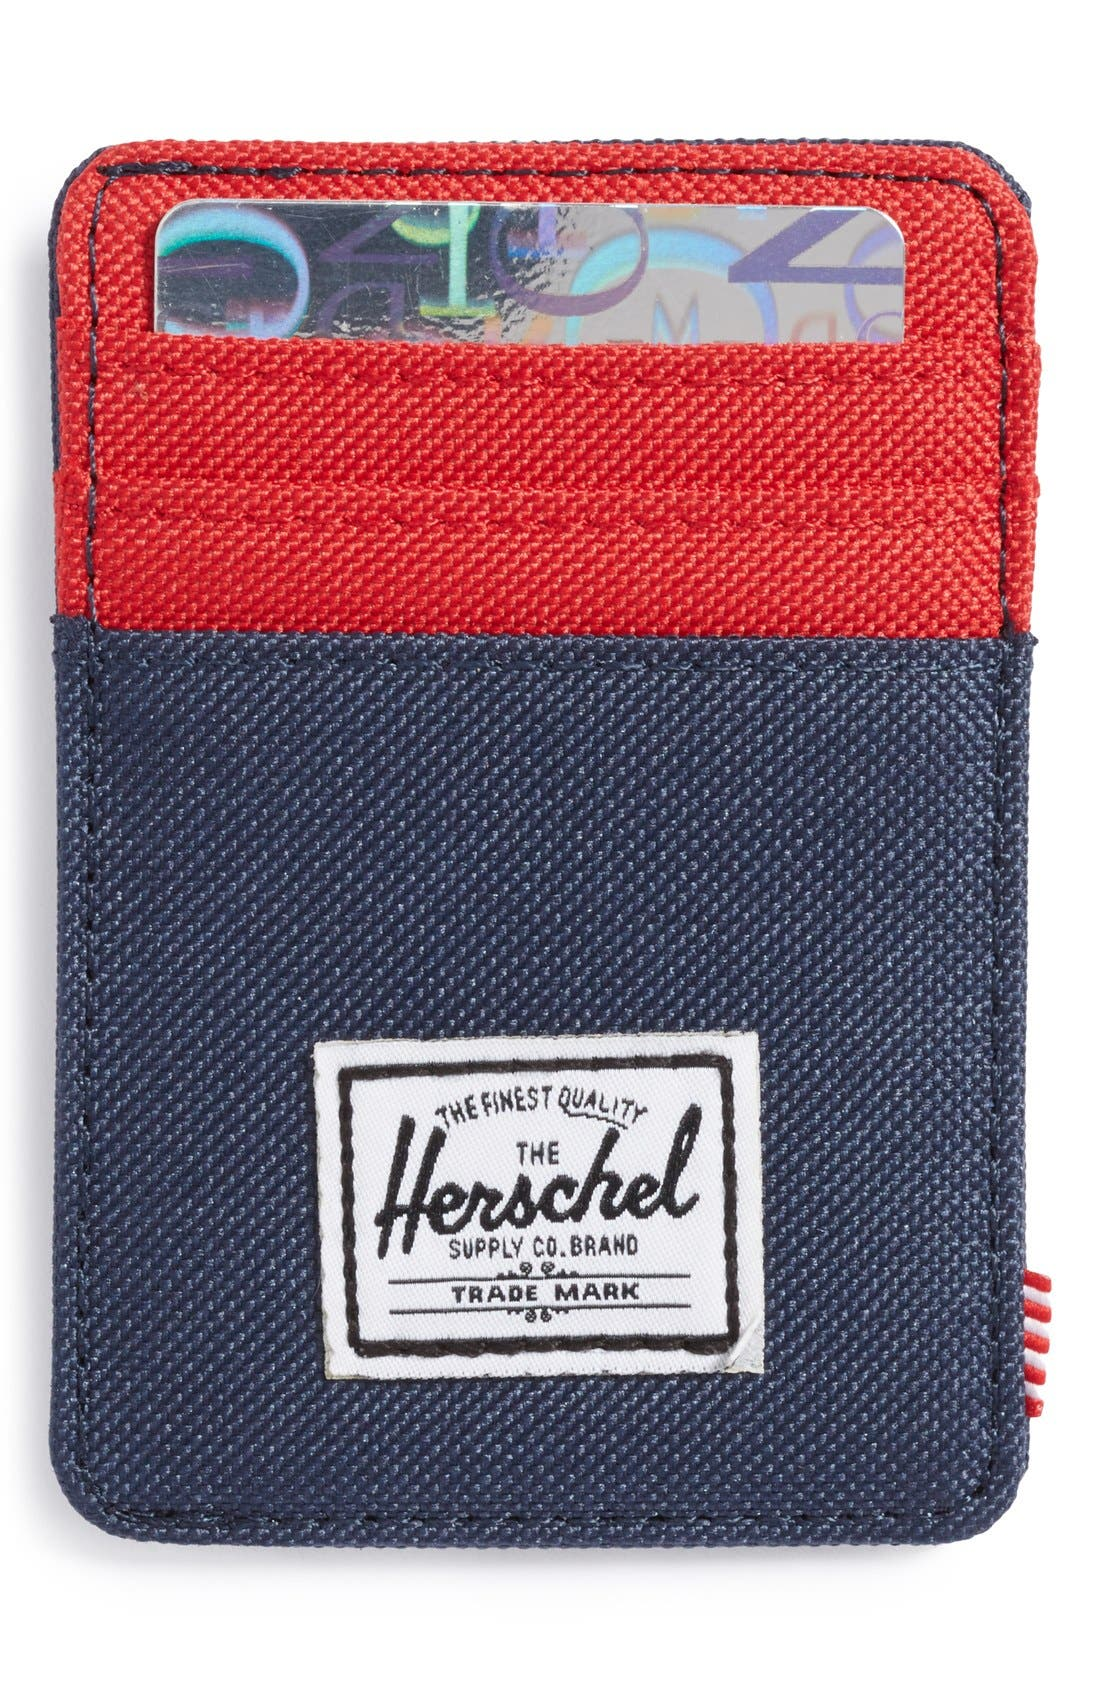 Alternate Image 1 Selected - Herschel Supply Co. 'Raven' Card Case